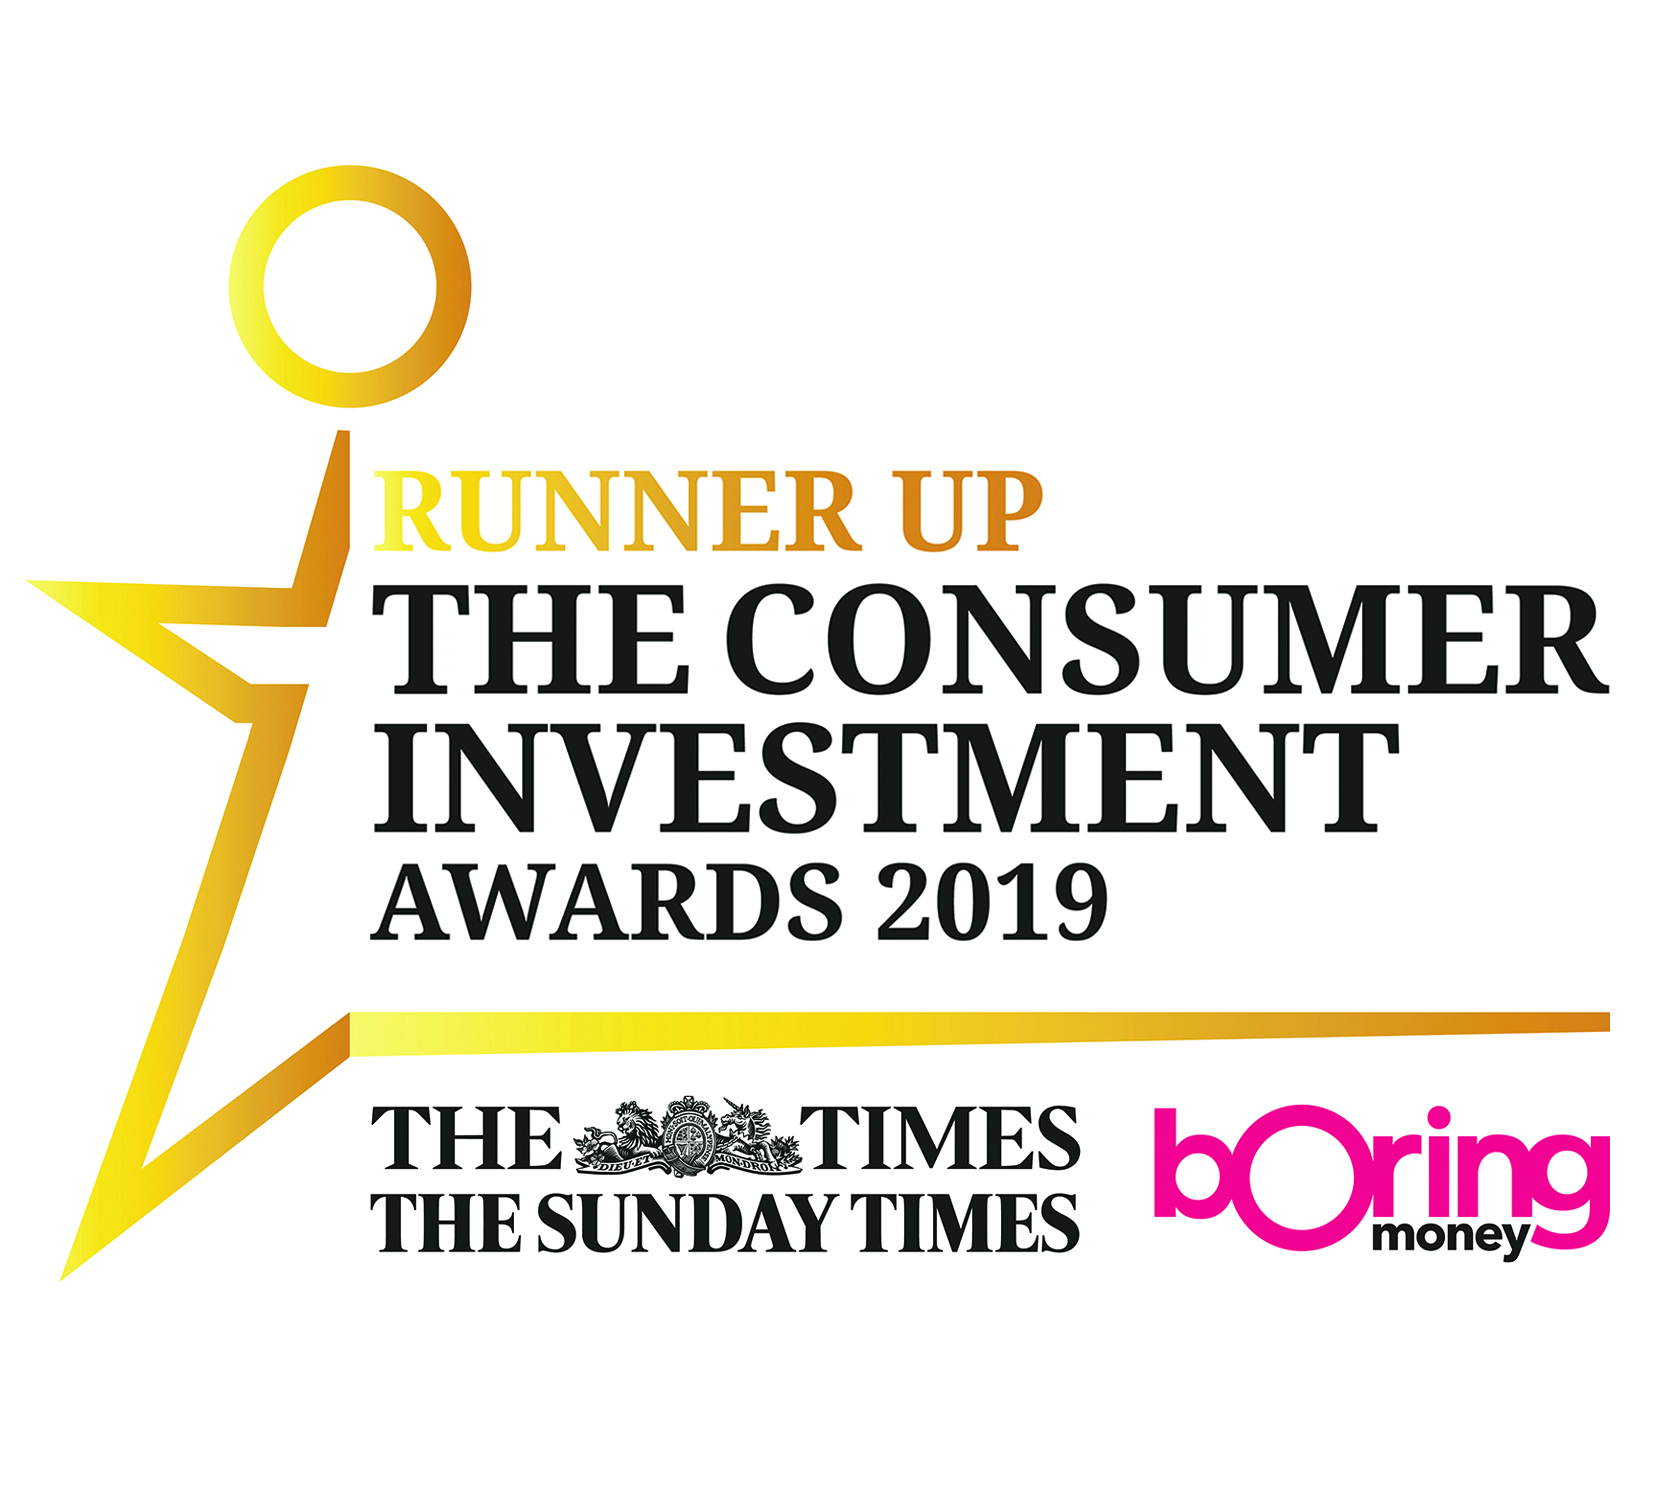 The Consumer Investment Awards - Runner Up